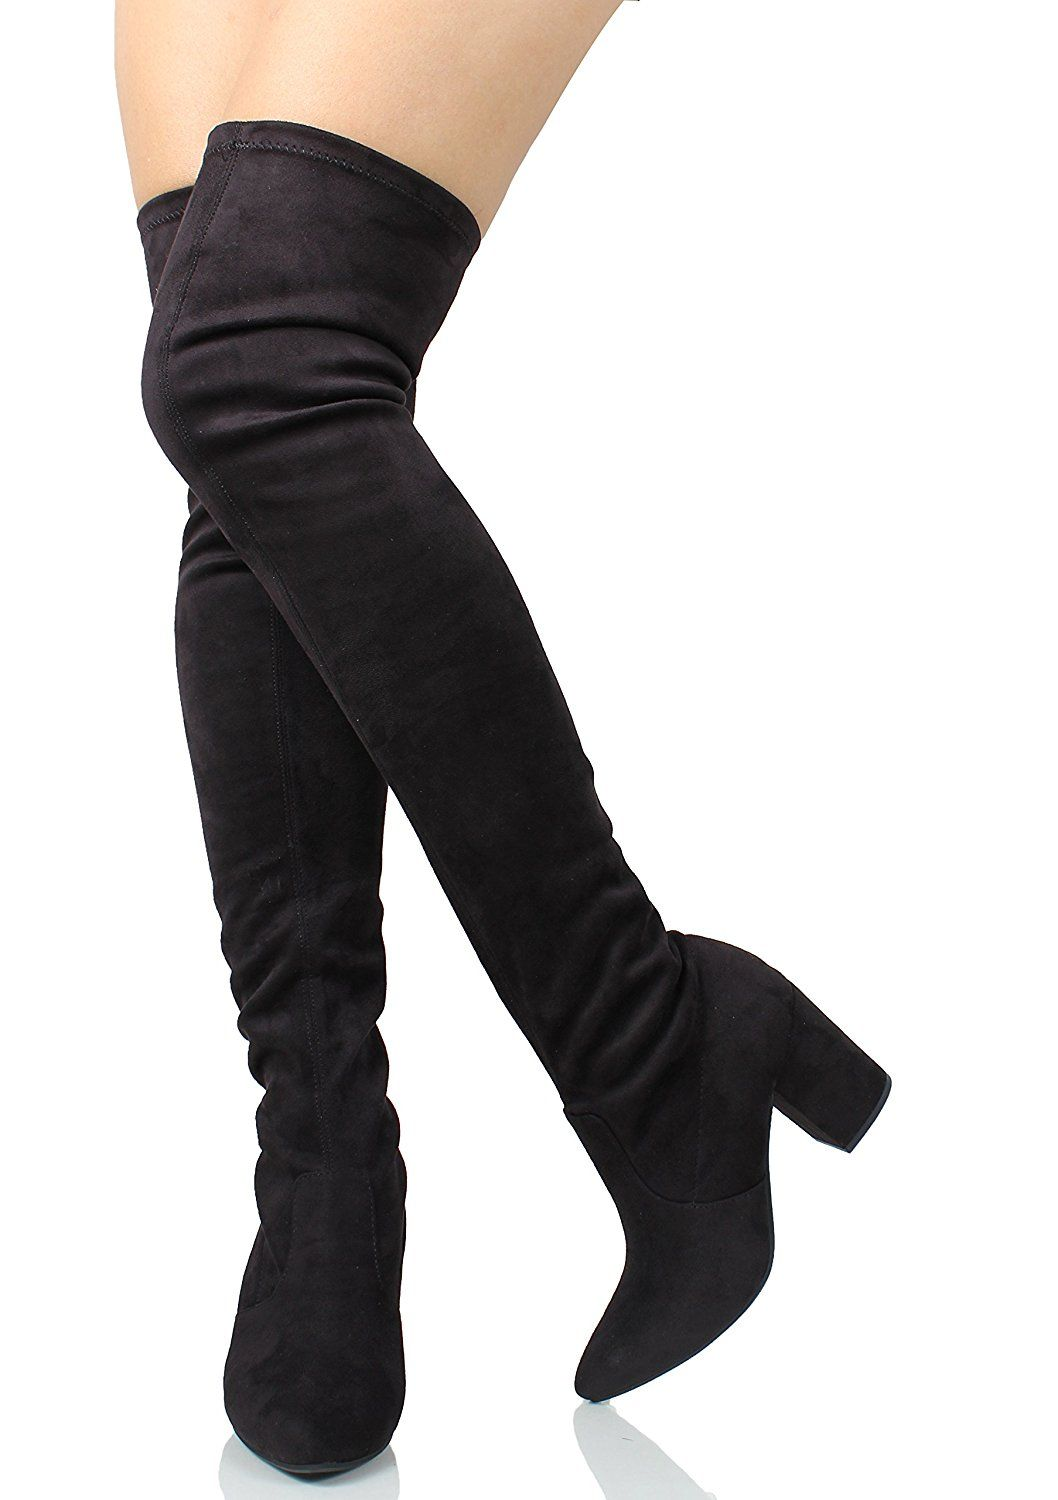 b04562077db3 Delicious Women s Pointy Toe Over The Knee HIgh Heel 3 1 4  Boot (Black Imsu